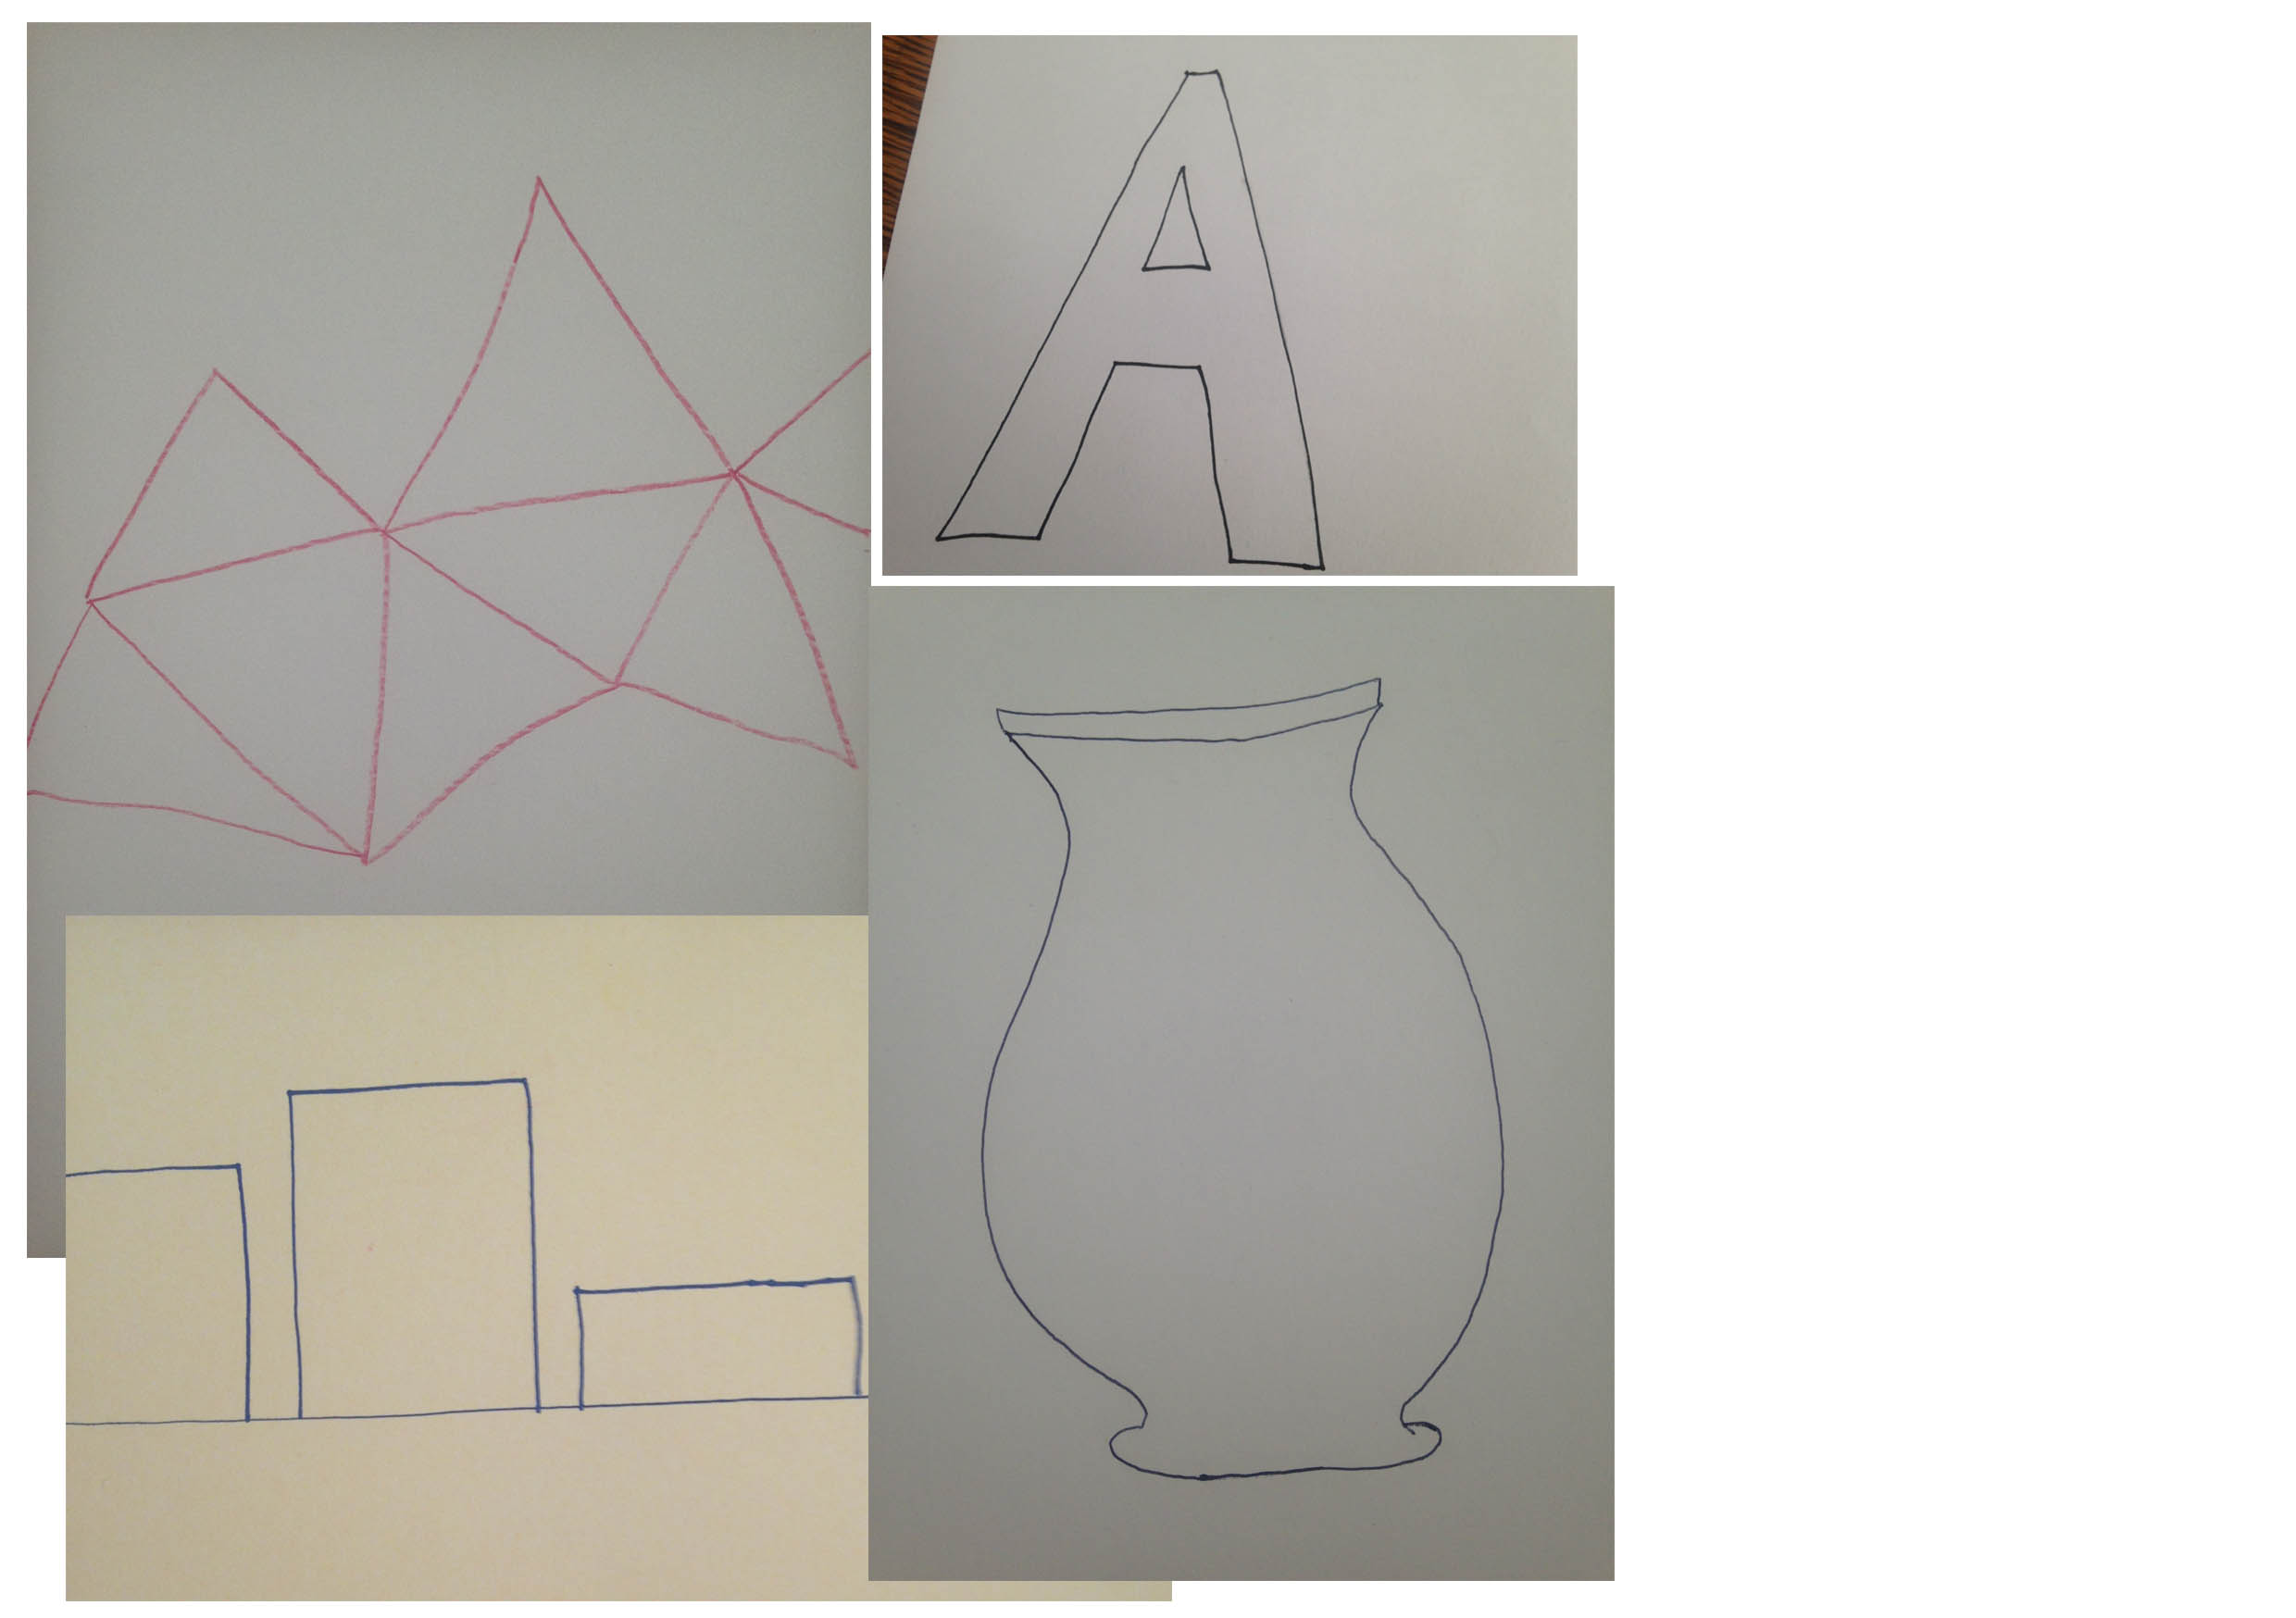 Step 1: - You could draw the outline of anything - it could be an object in your home, an animal, letters, buildings or simply shapes.